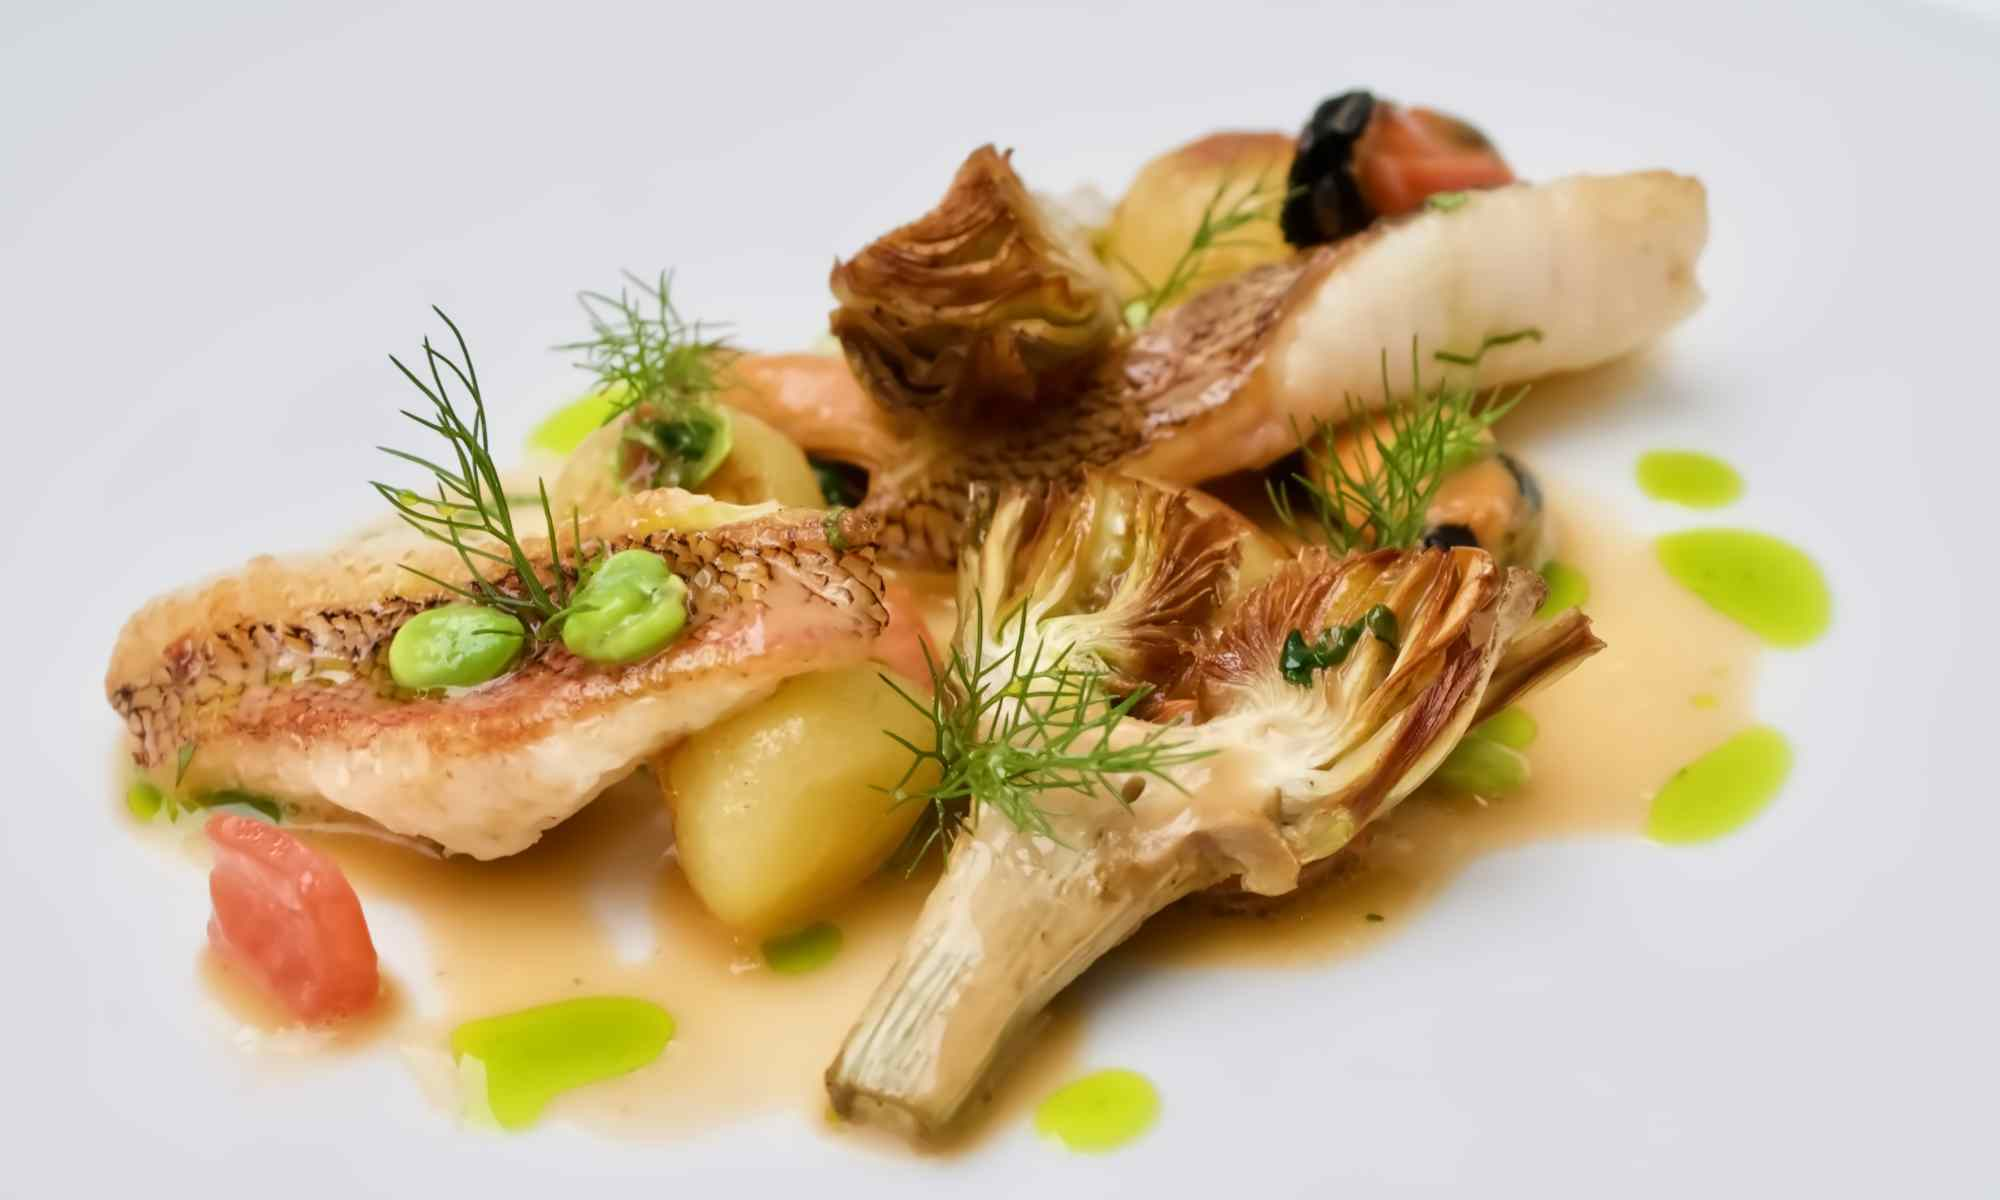 Cap roig, artichokes and mussels - Food by Pollensa Private Chefs